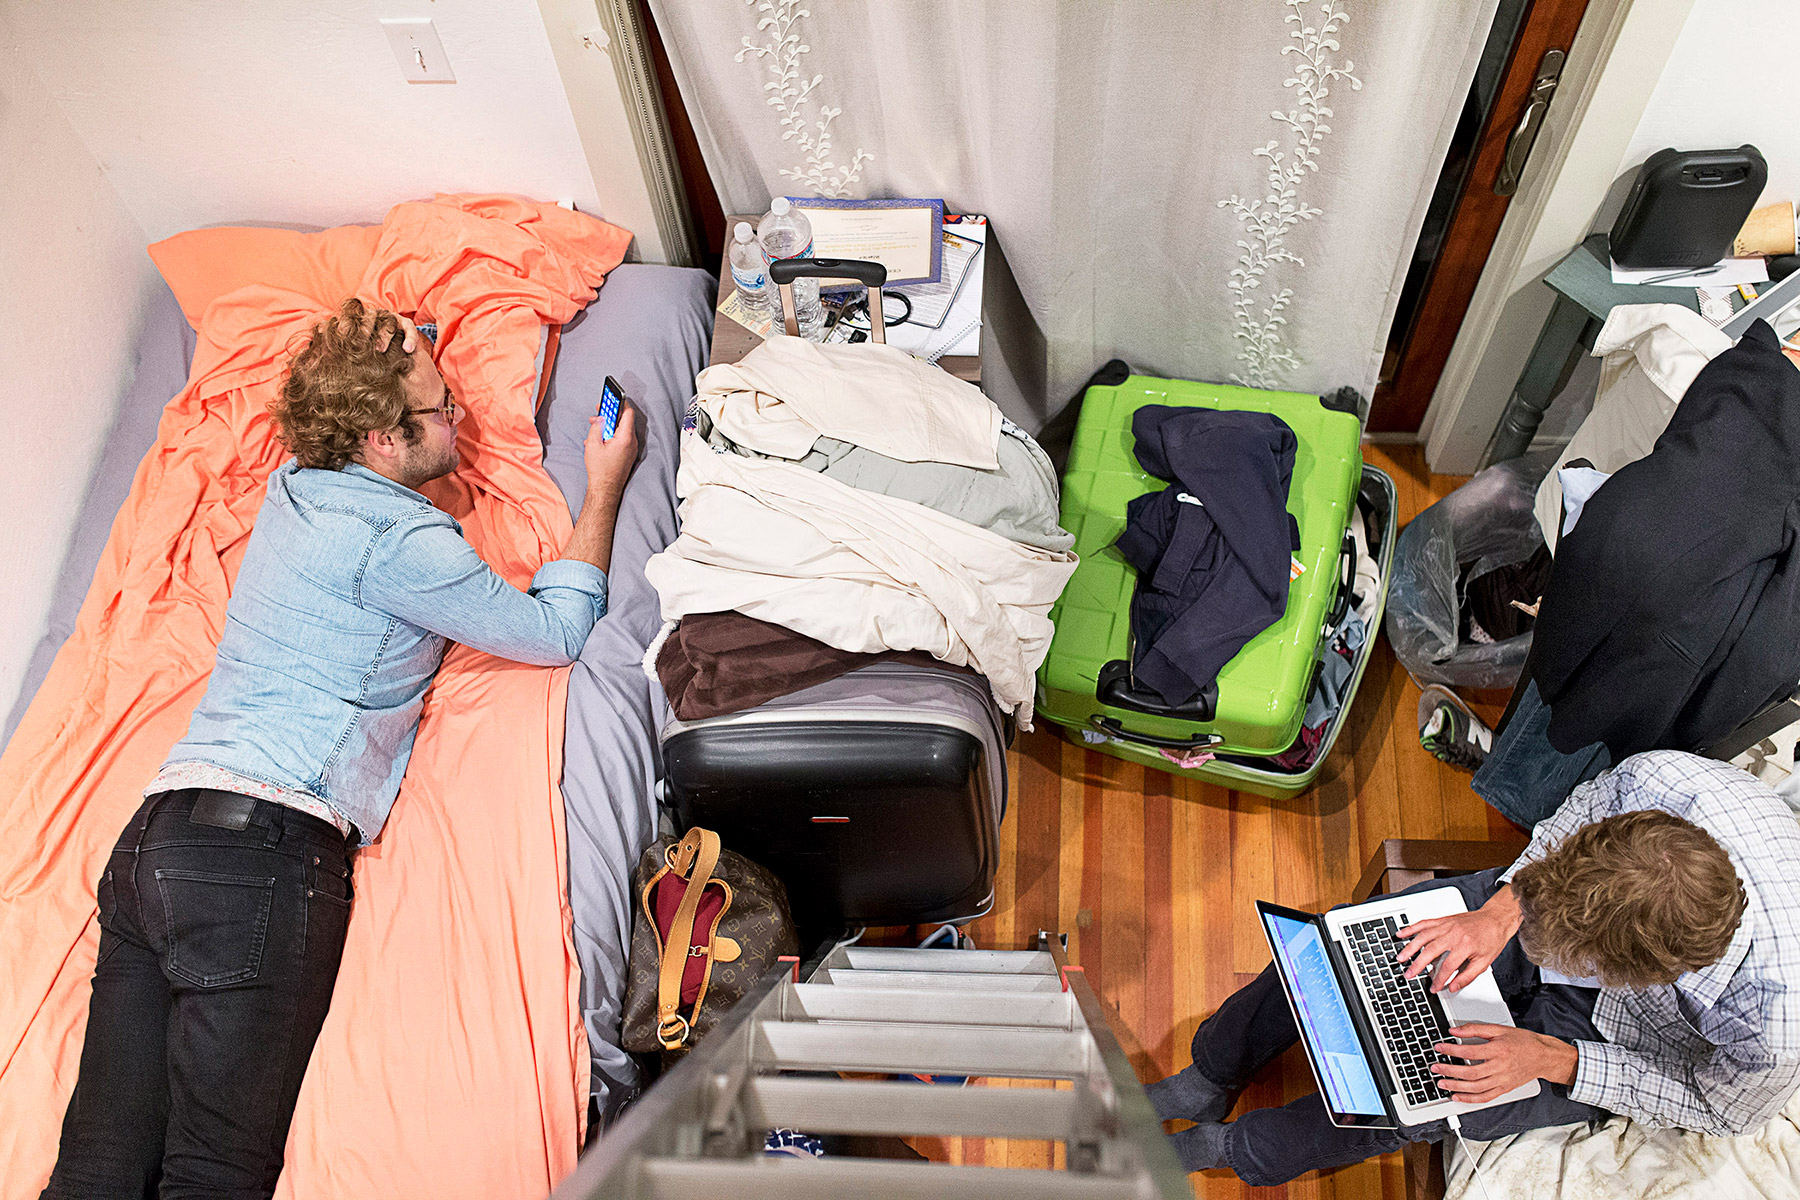 Raphael Dardek, left, a co-founder of Weeleo, relaxes in the bed where he was temporarily staying at a fraternity house in Berkeley, California in August 2014. Dardek and another co-founder spent the summer couch surfing in order to save money while in San Francisco from France to participate in an accelerator program with their company Weeleo, a peer-to-peer currency exchange platform.